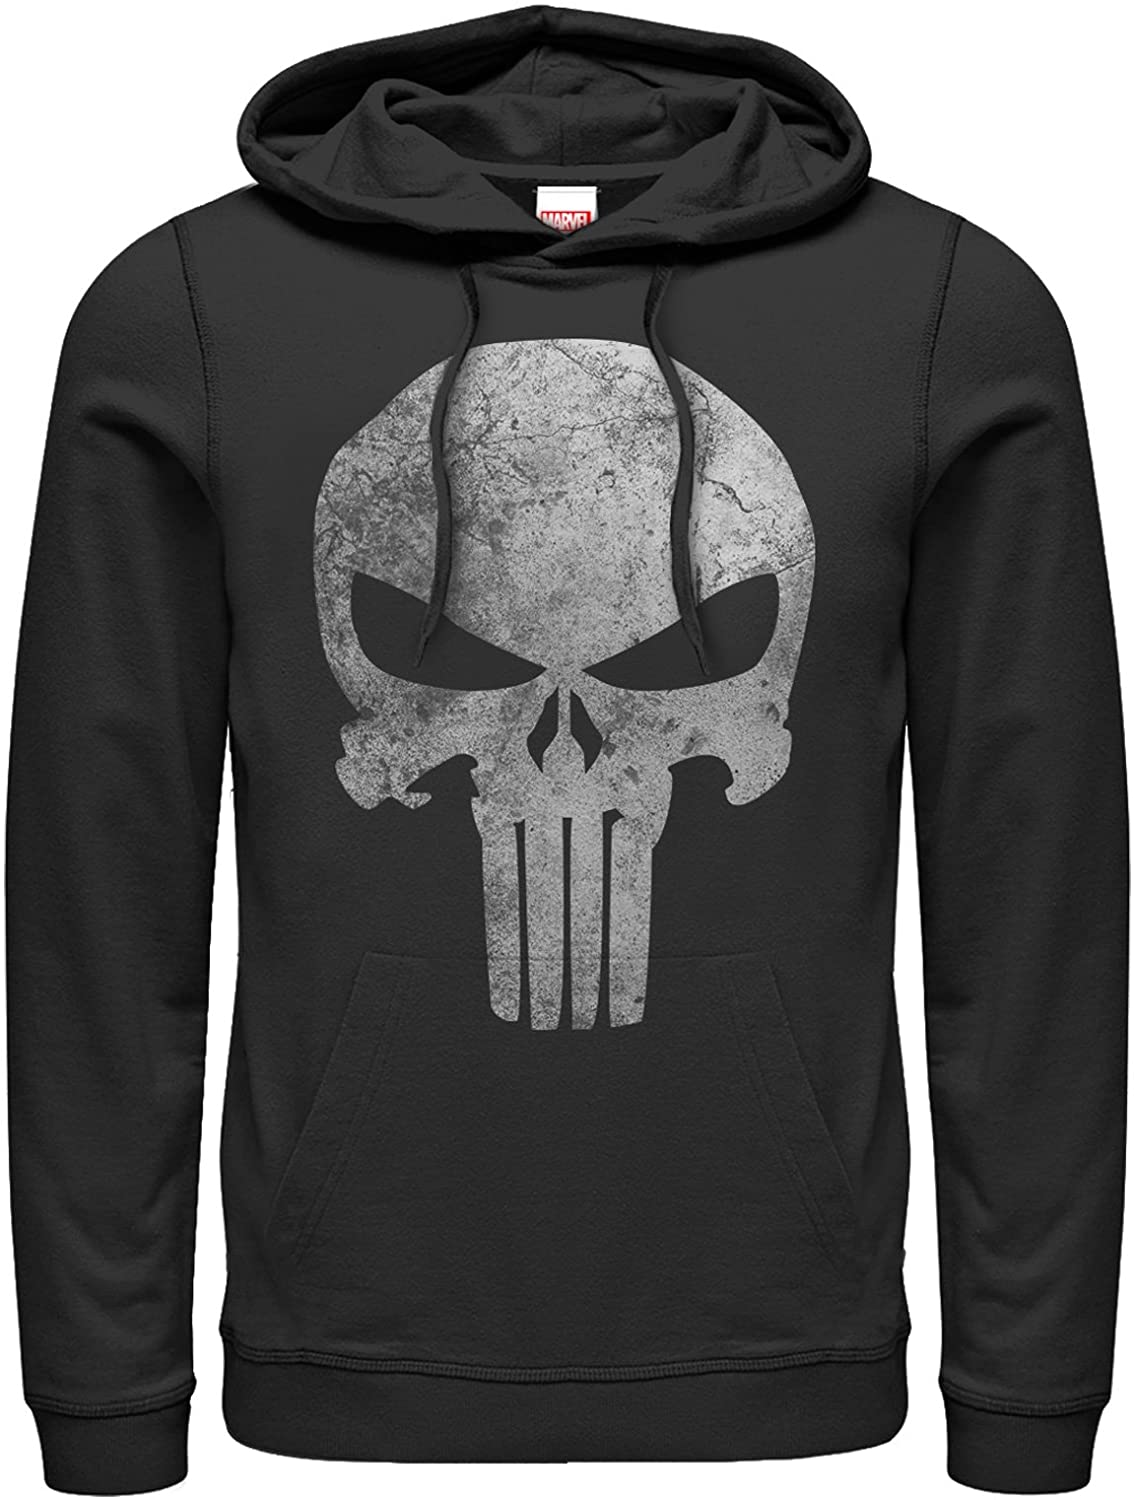 The punisher iconic skull hoodies for guys